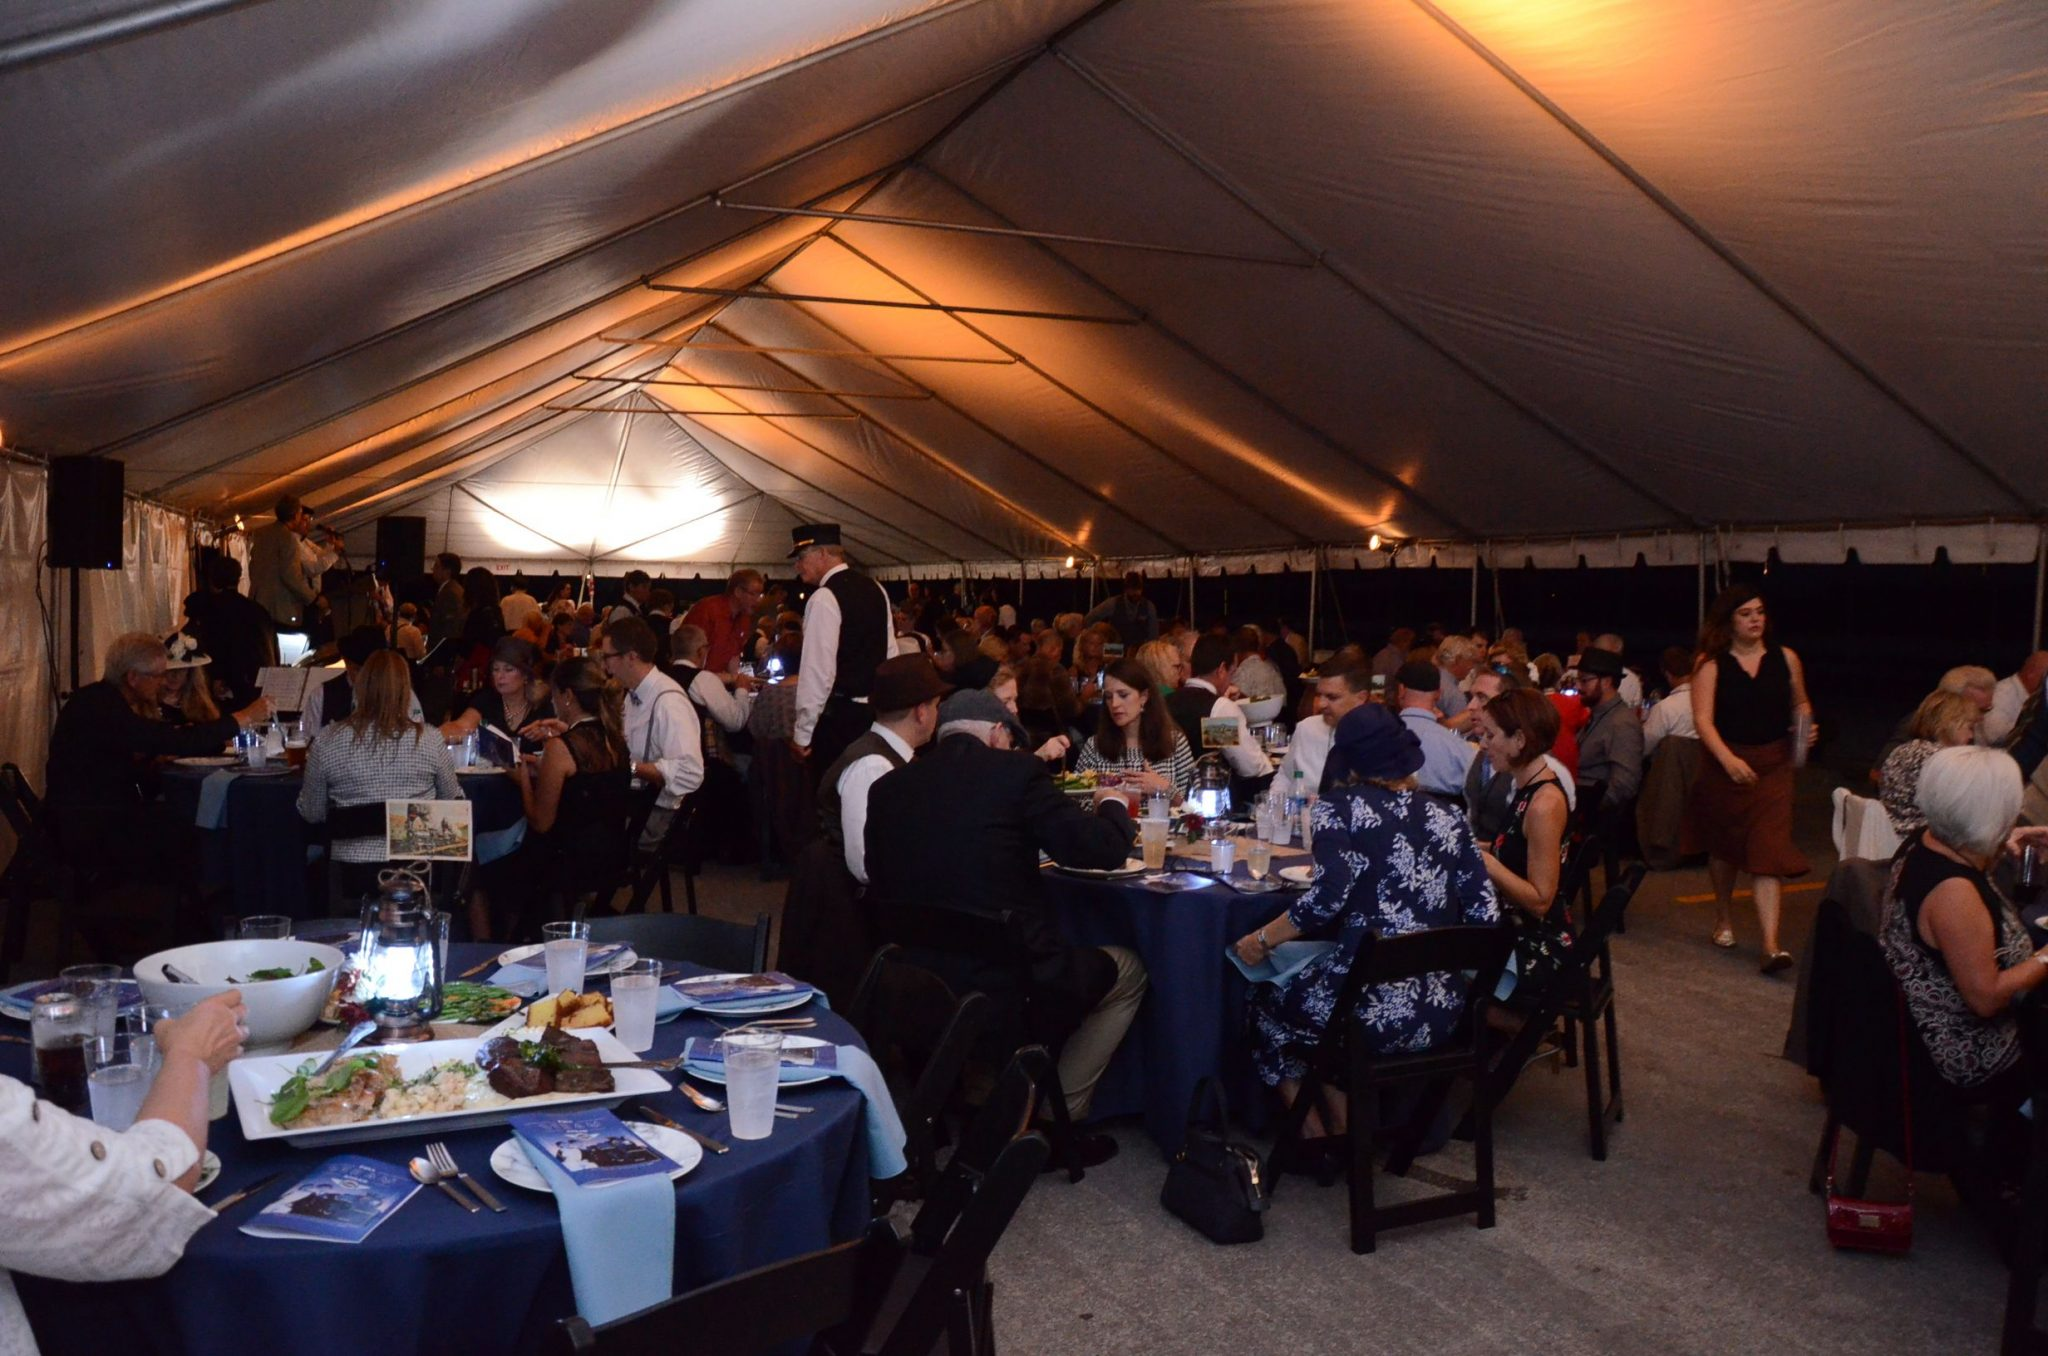 guests dine at tables under a large tent